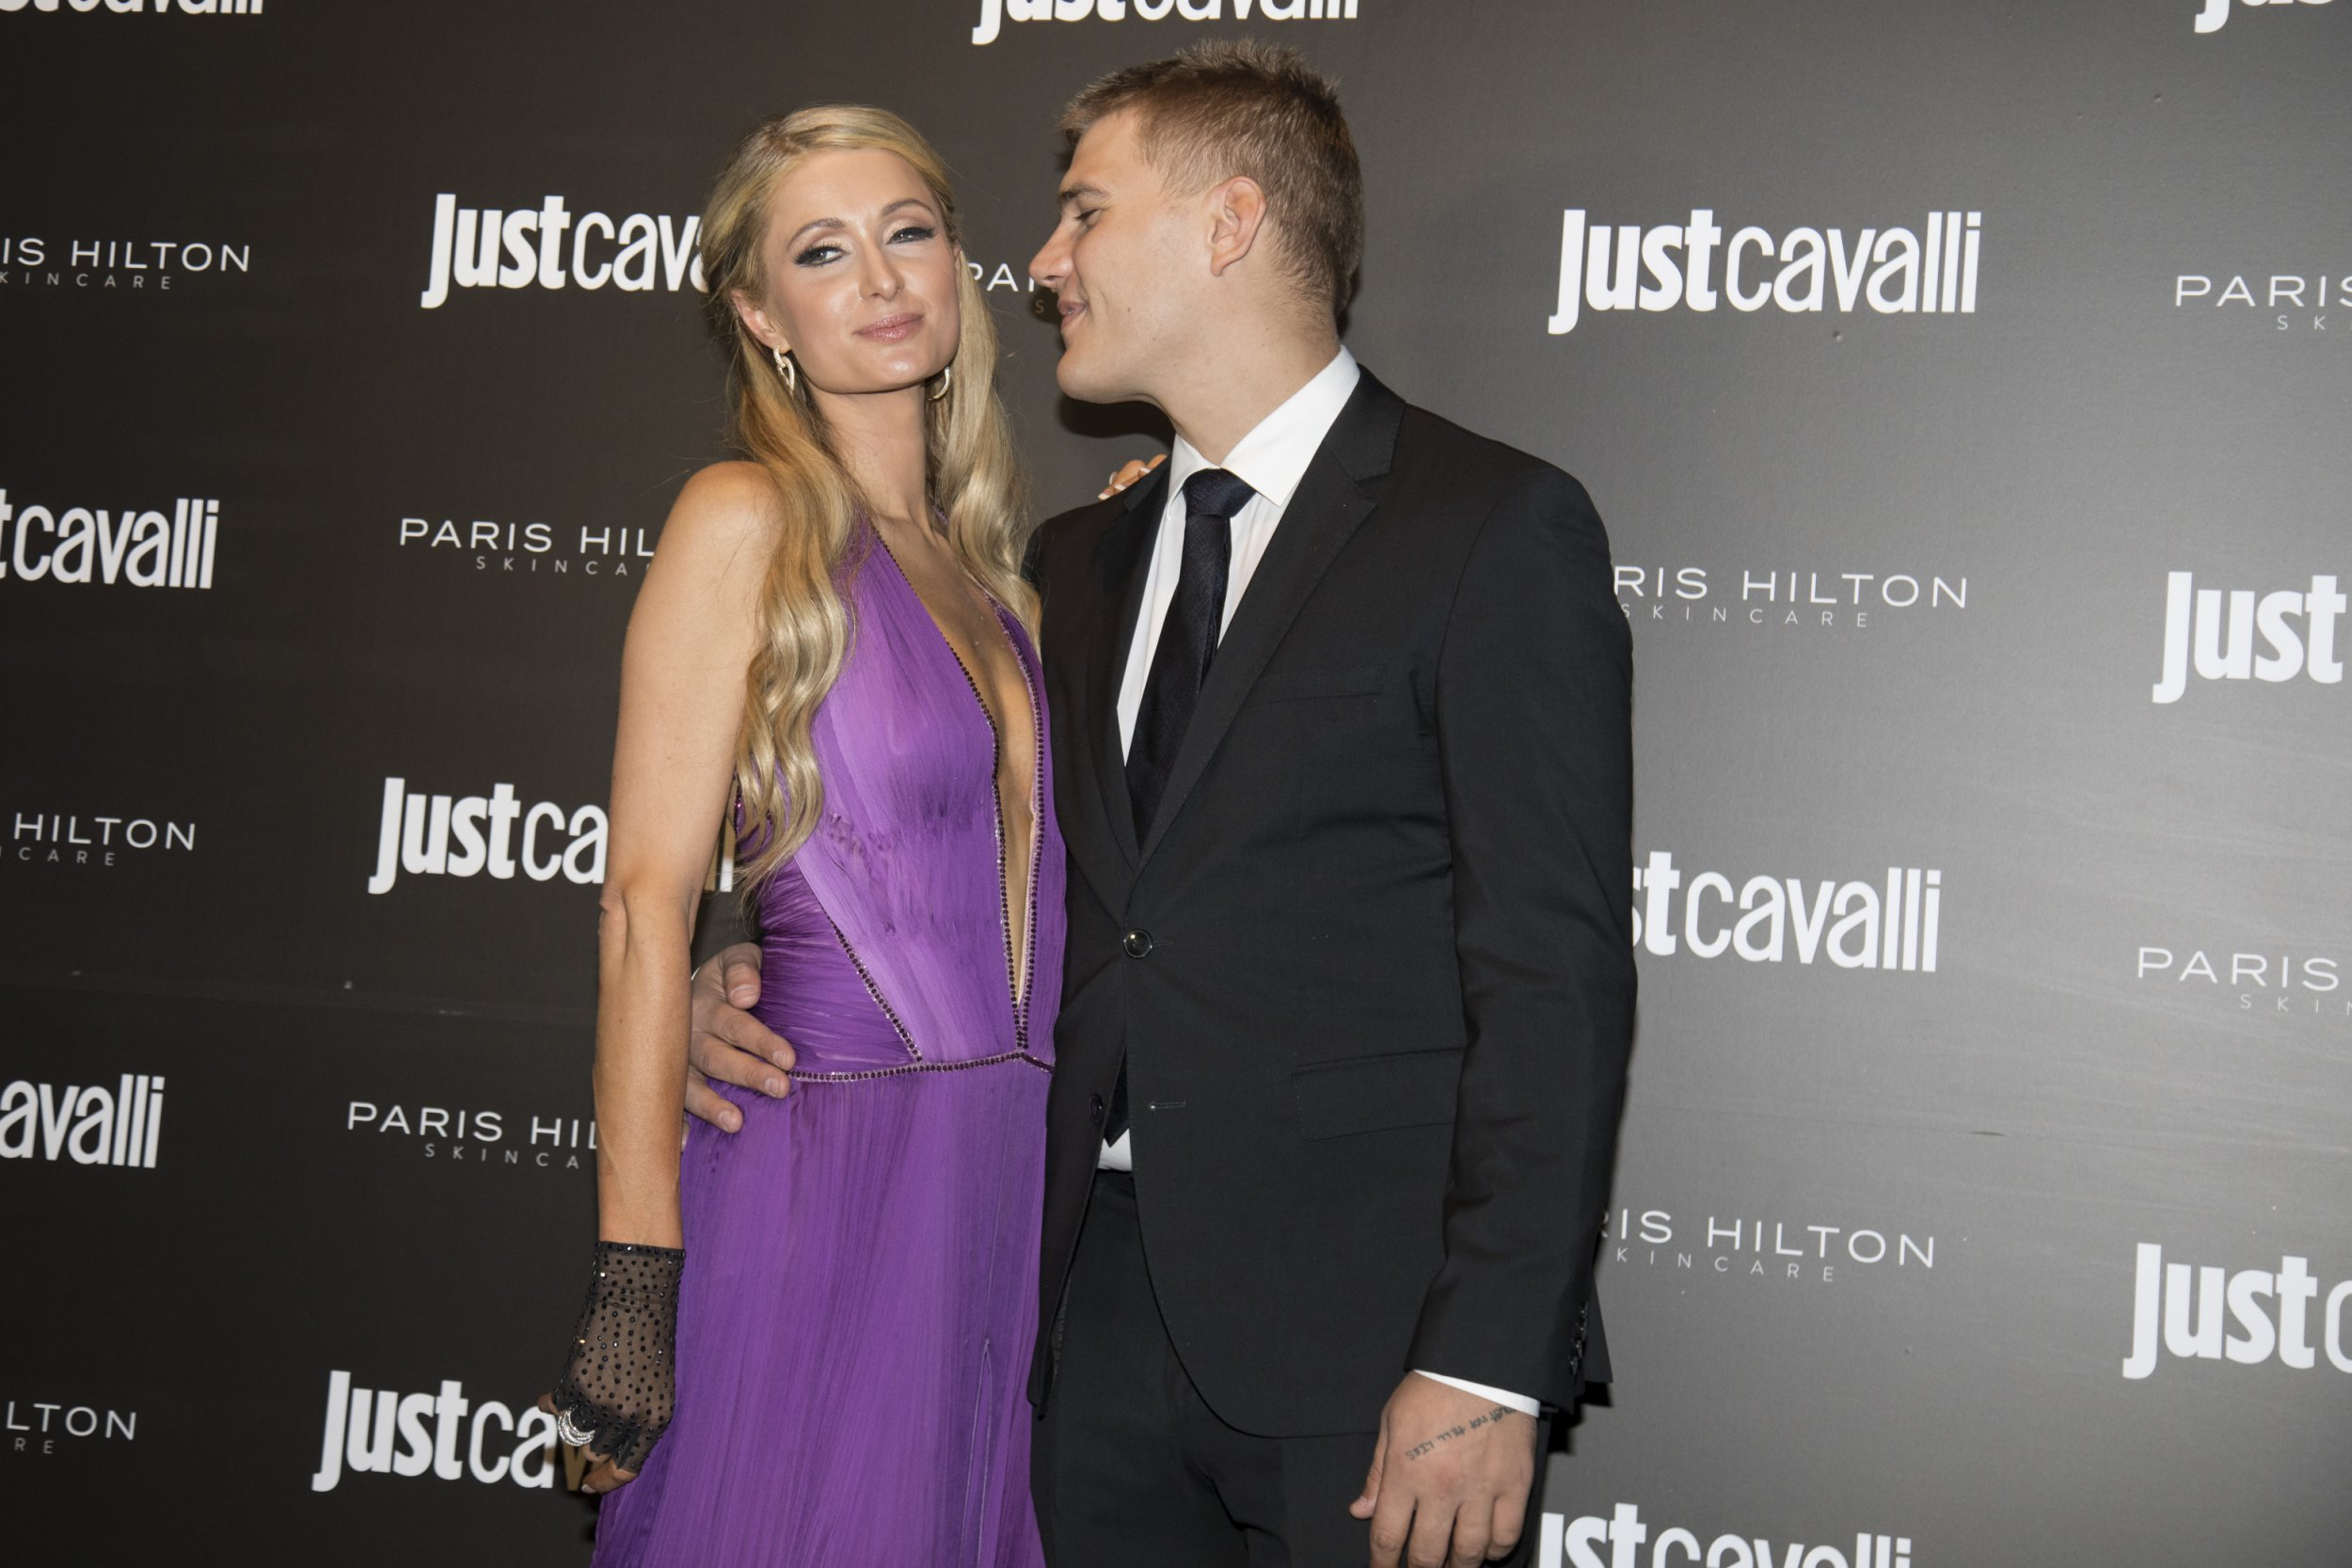 Paris Hilton admits her whirlwind engagement to Chris Zylka was 'too fast' and 'didn't feel right'